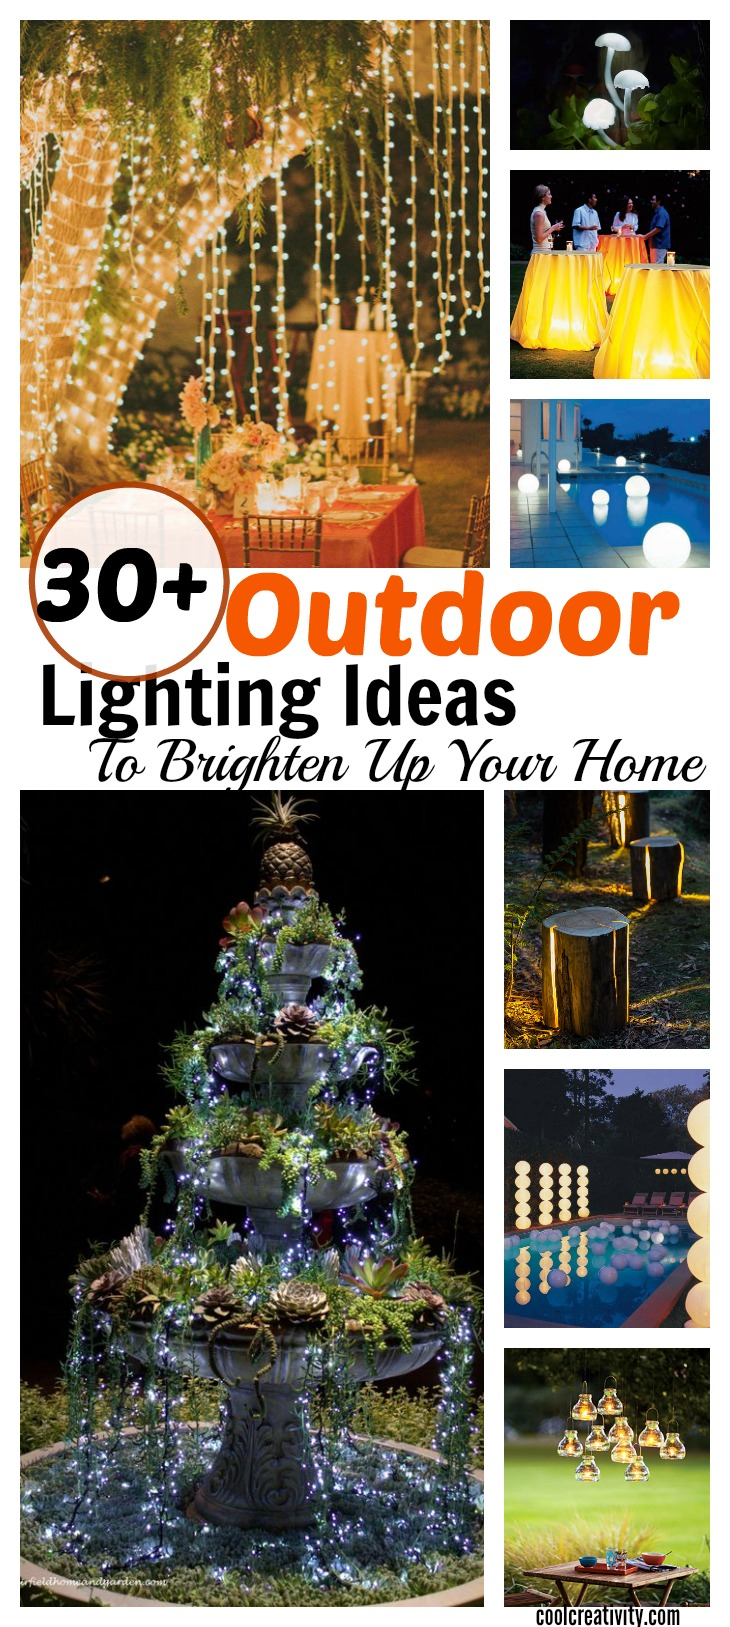 30 Cool Ideas And Pictures Of Bathroom Tile Art: 30+ Cool DIY Outdoor Lighting Ideas To Brighten Up Your